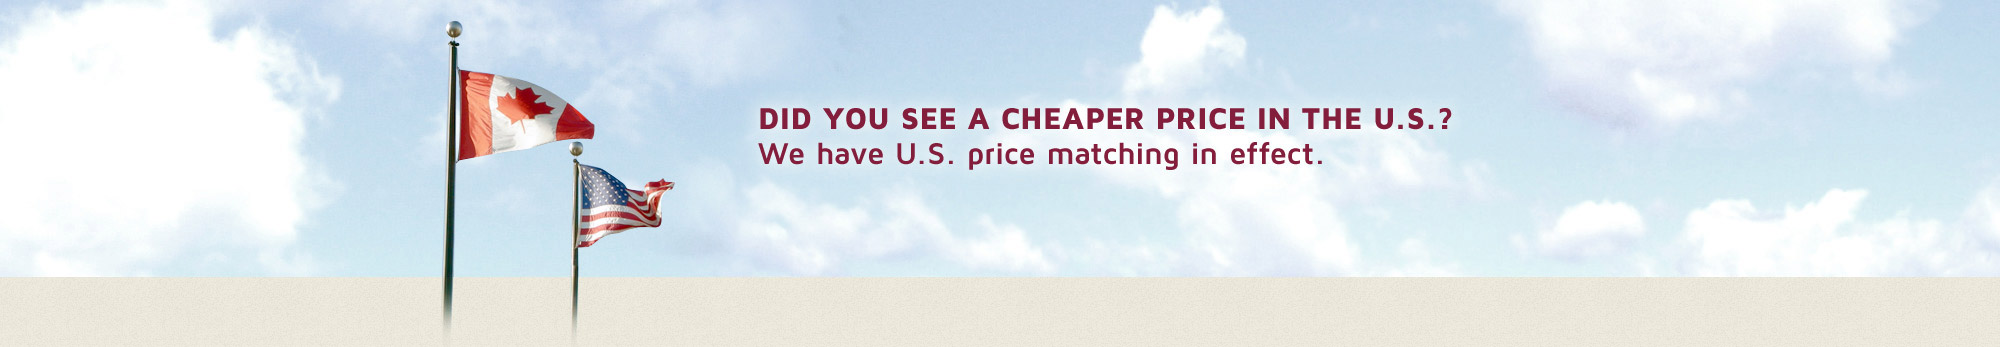 We match U.S. Price!